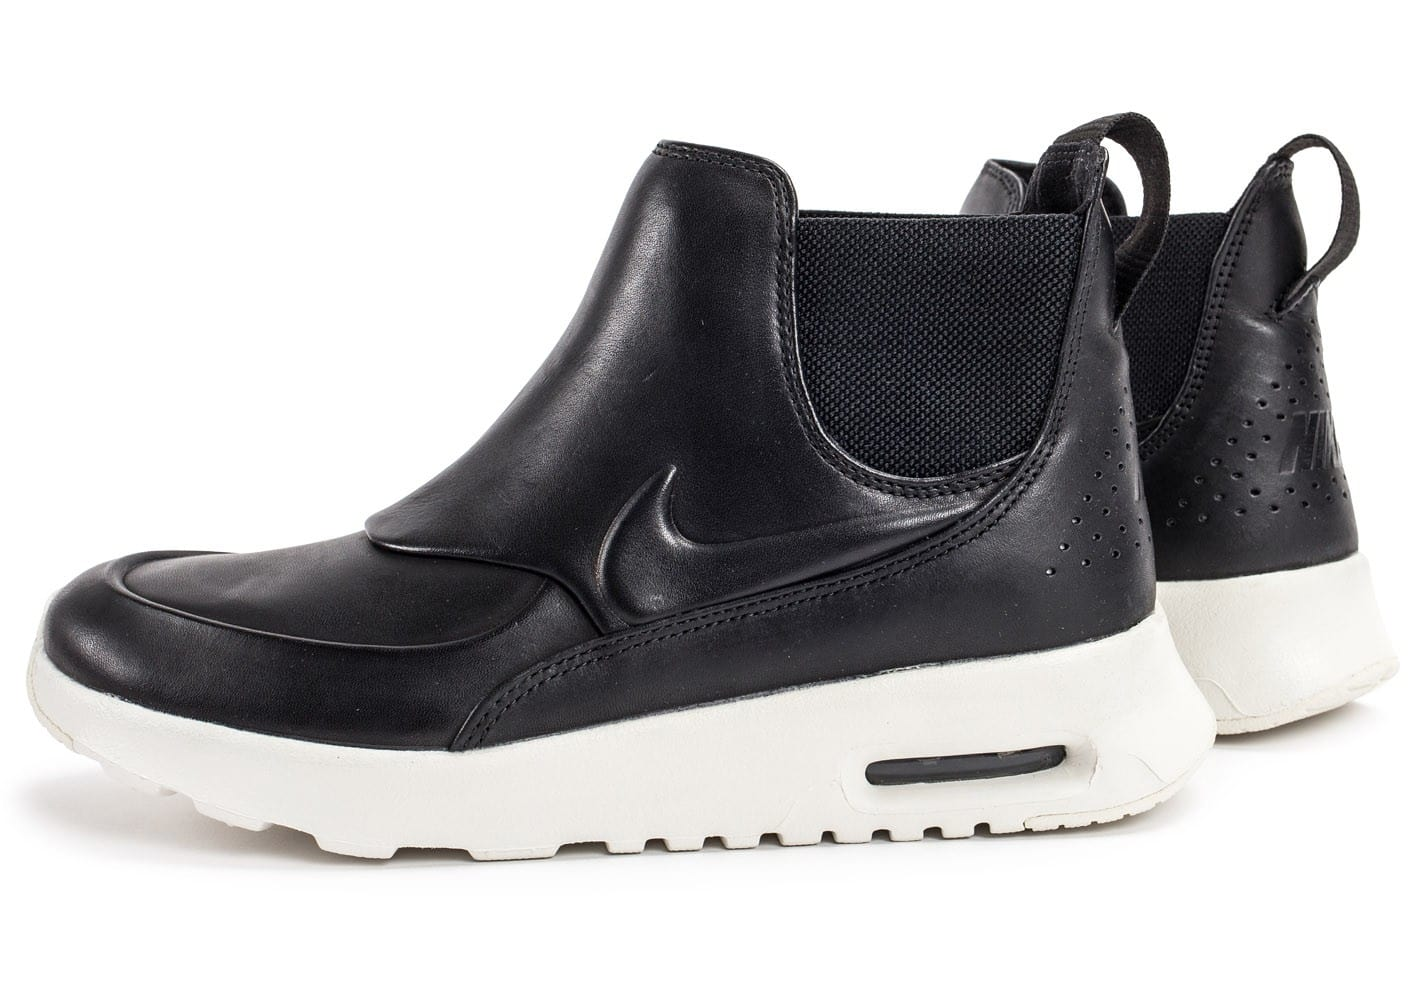 Nike Air Max Thea Mid noire Chaussures Baskets femme